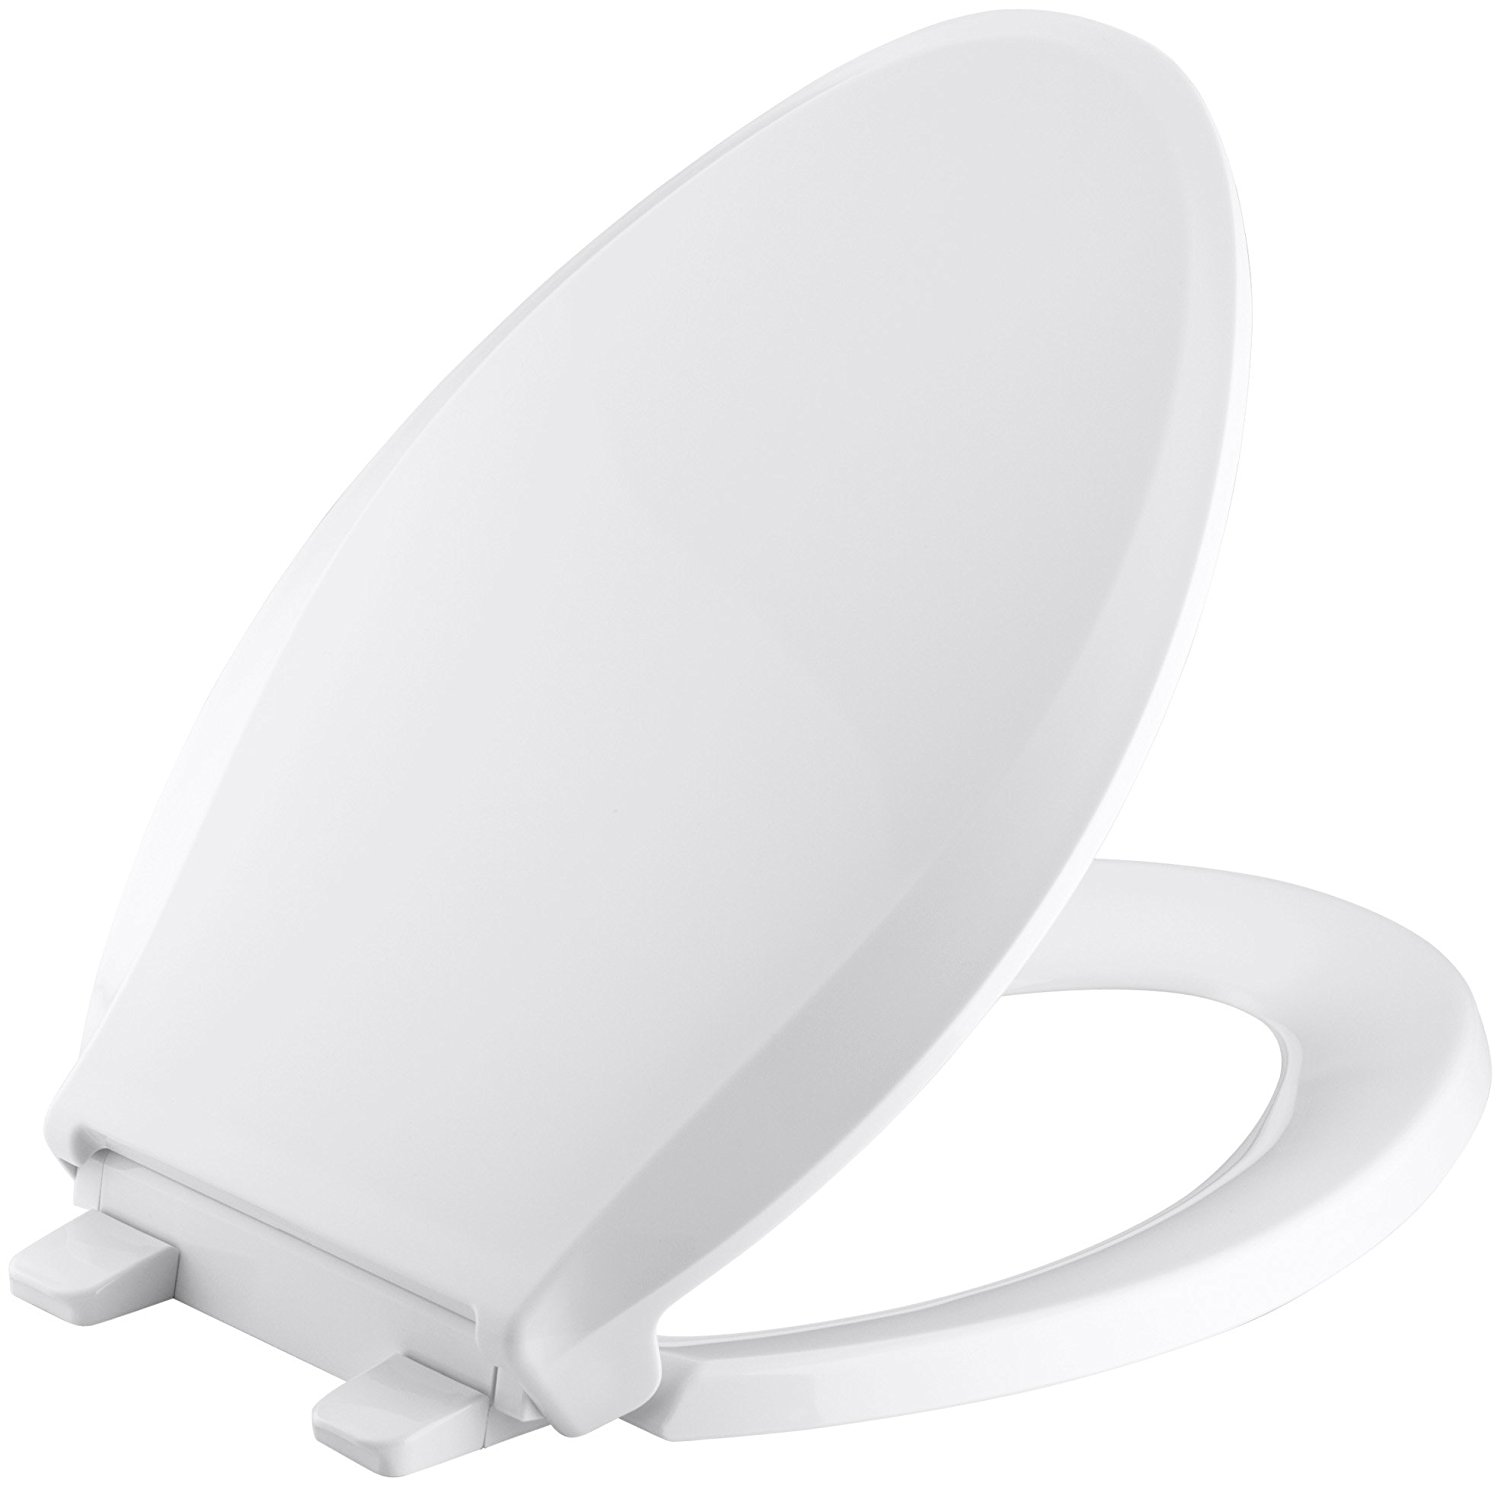 KOHLER K-4636-0 Cachet Quiet-Close with Grip-Tight Bumpers Elongated Toilet Seat, White